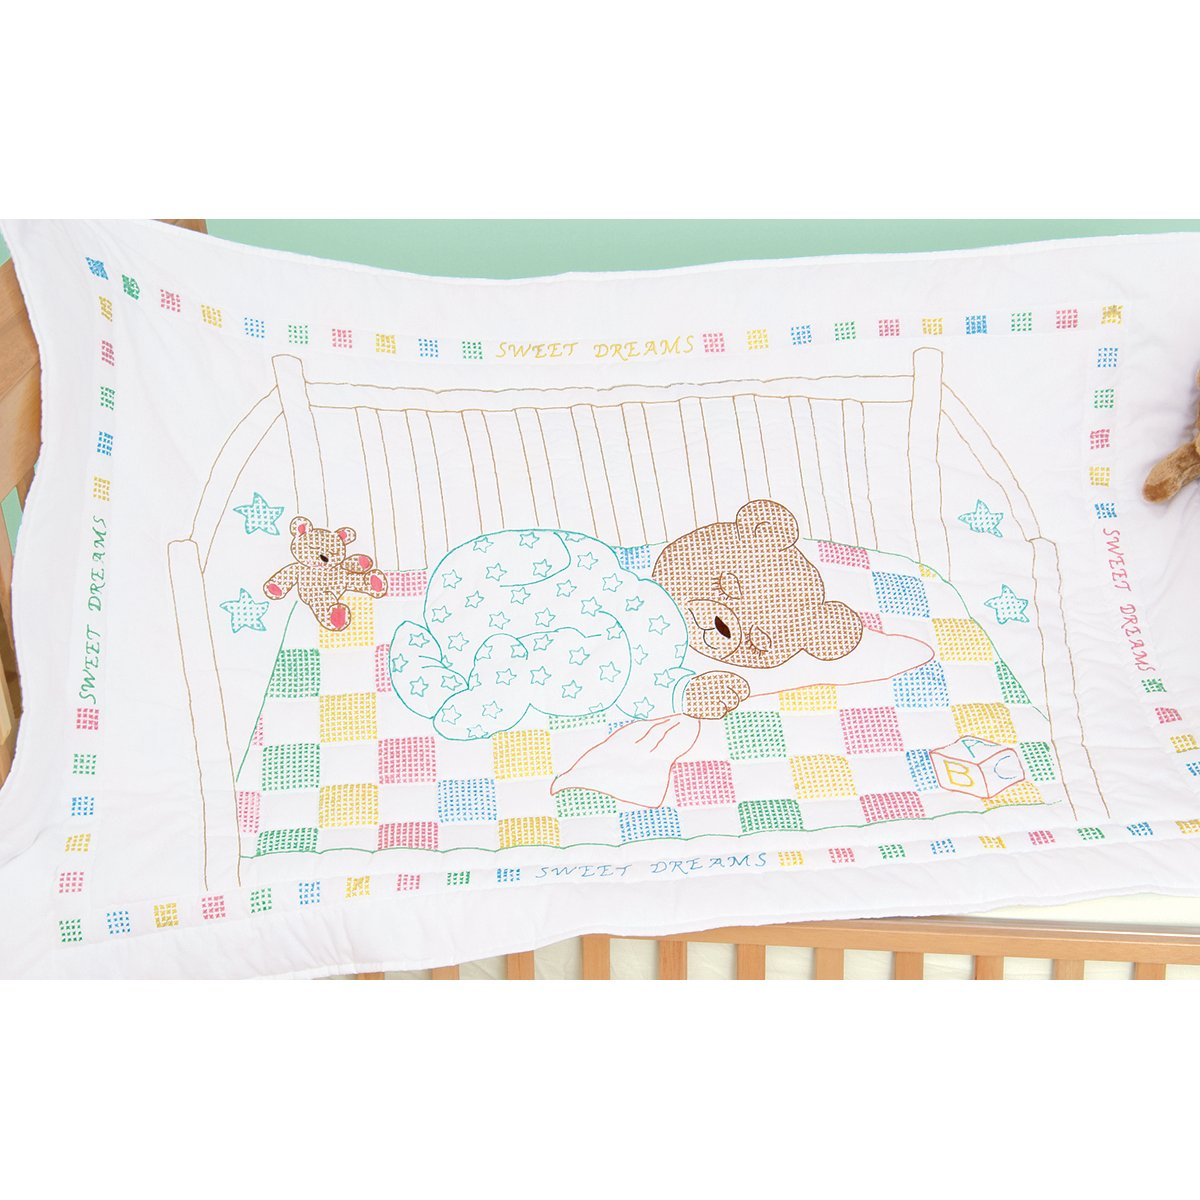 Jack Dempsey Stamped Quilt Crib Top, 40 by 60-Inch, Snuggly Teddy, White 4060 452